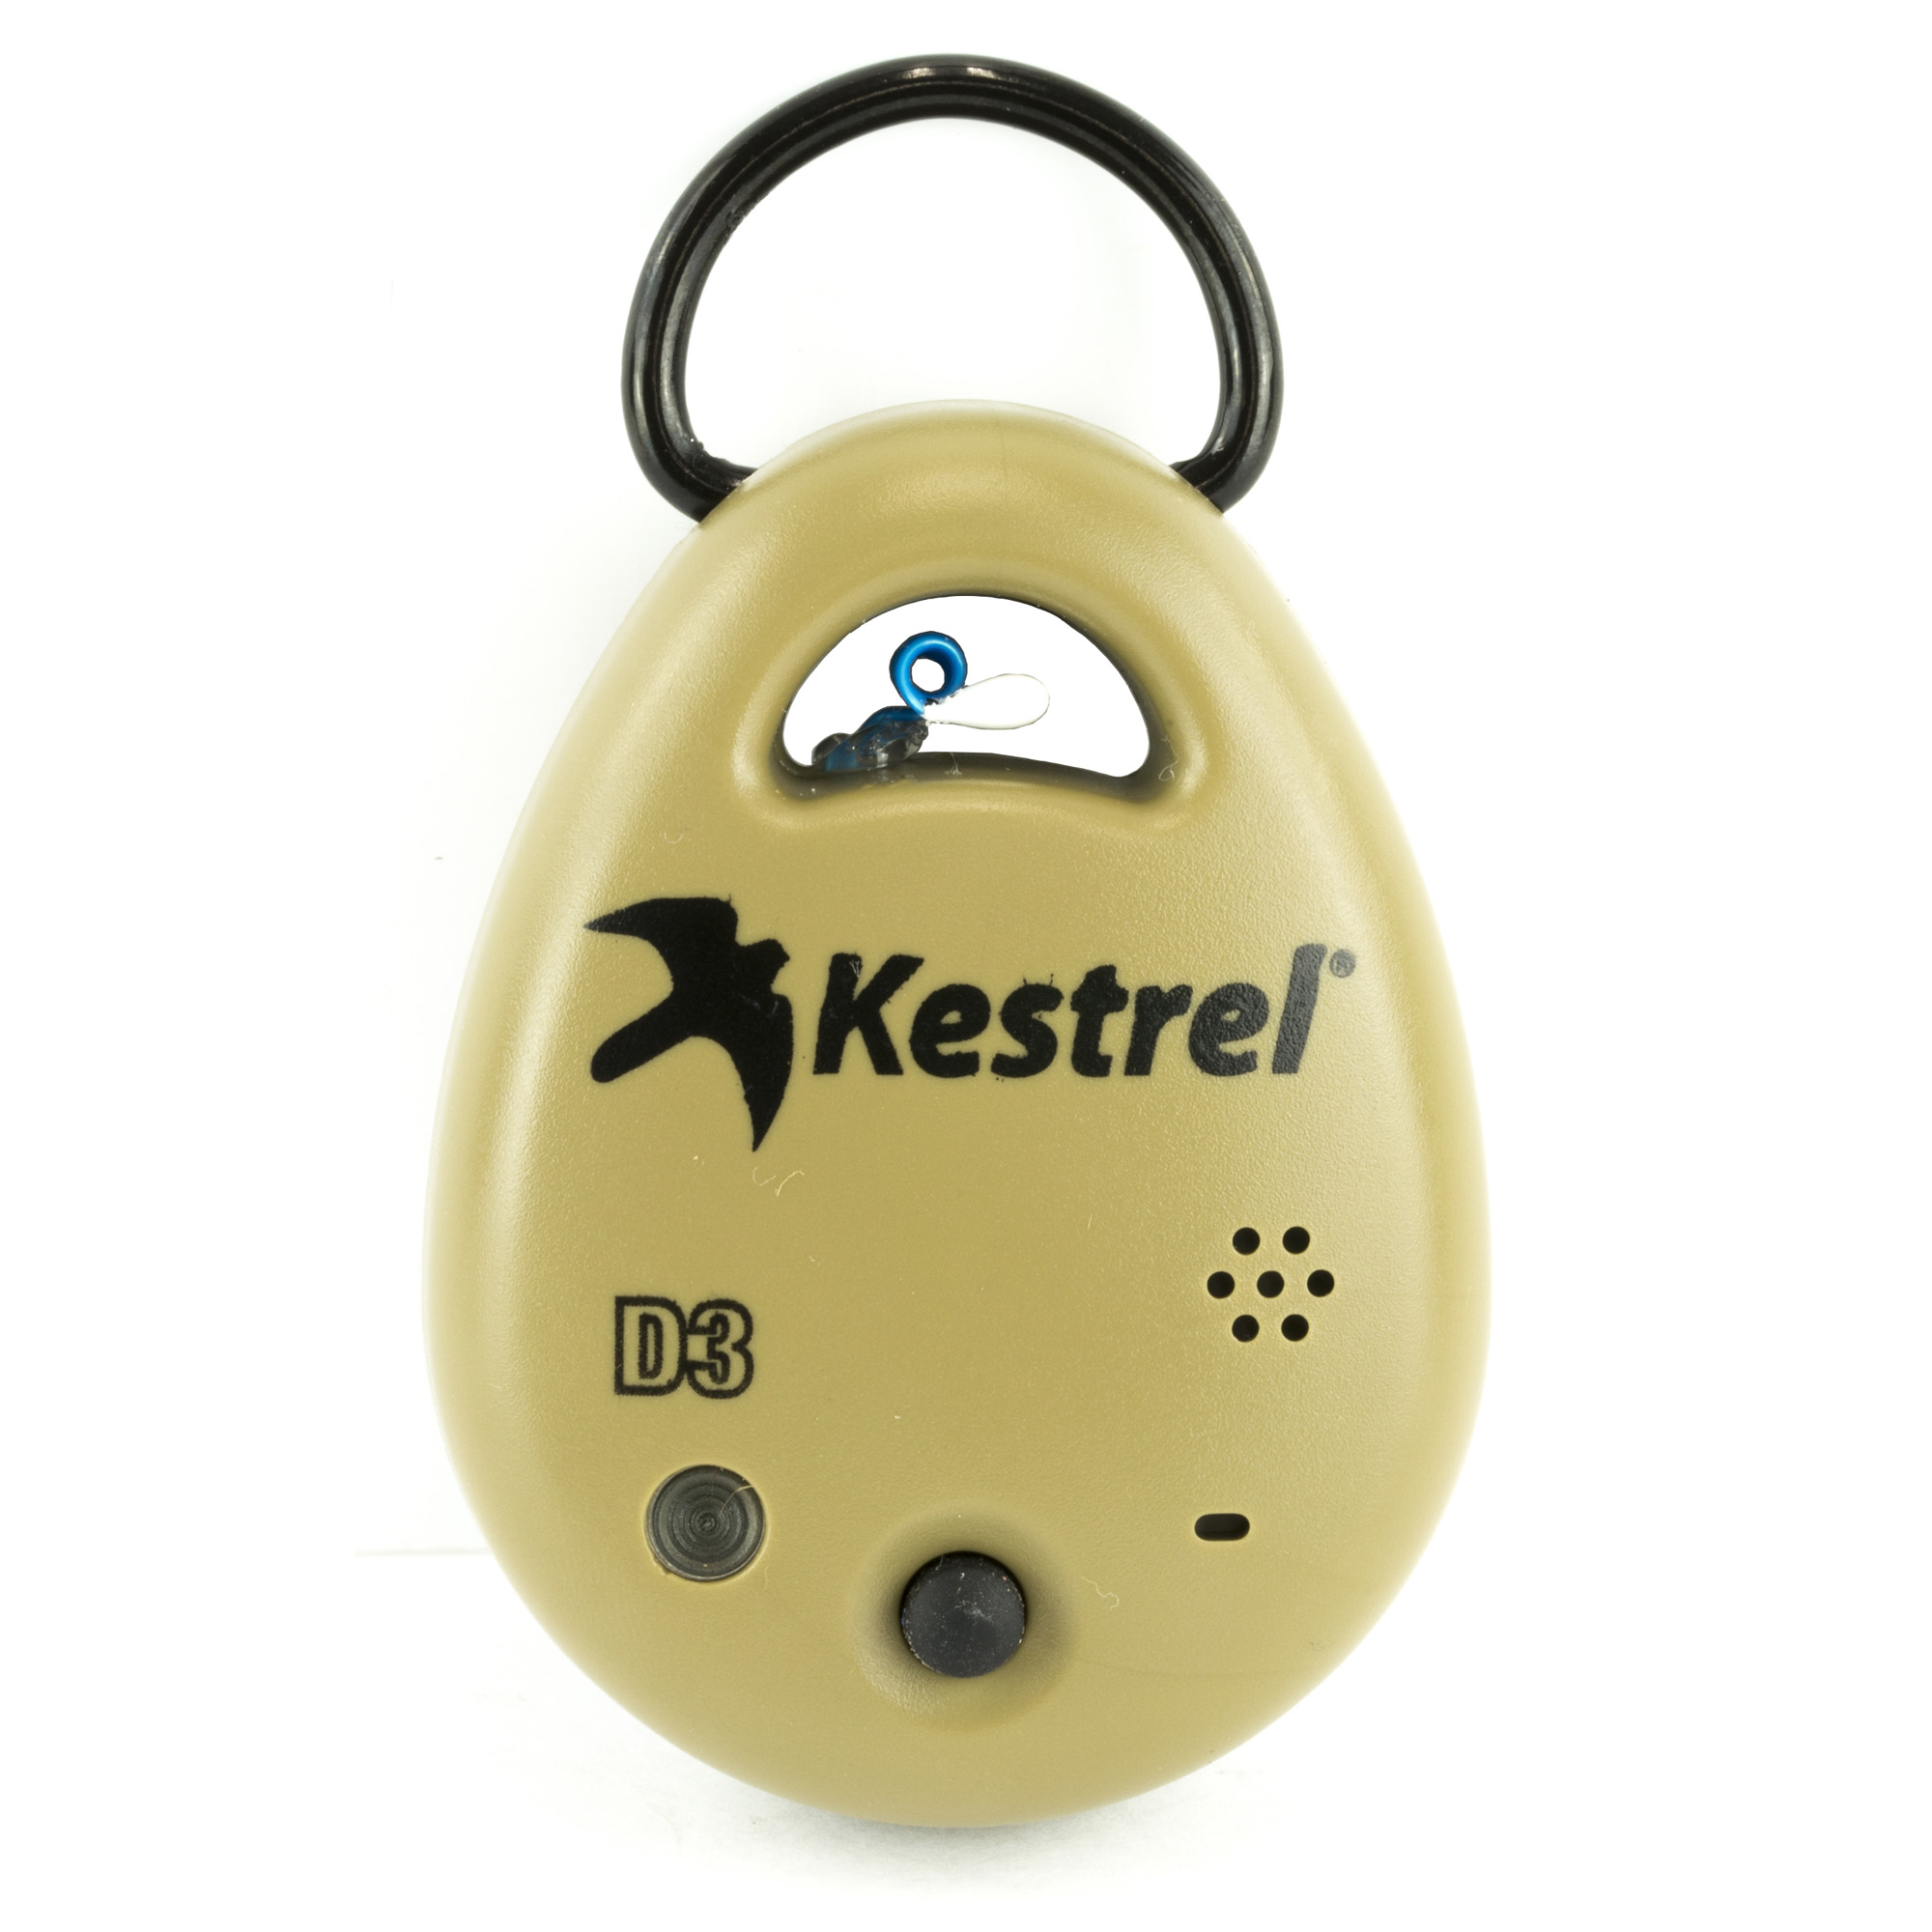 "Kestrel DROPs are small"" rugged"" and accurate environmental data loggers. The Kestrel Drop D1 targets many markets including Transportation"" Agriculture"" Firefighting"" Facilities Management"" Medical"" Pharmaceutical"" Consumer and others. With made in the USA quality standards and durability from NK"" manufactures of Kestrel Meters"" the applications are endless. From measuring environmental data during cargo transport to conditions in the field for military training to feeling secure about the climate conditions in any room"" shipped box"" cargo"" trailer"" freight container"" to as simple as a room in your home or office building"" you are able to measure all of these conditions even when you're physically not there."